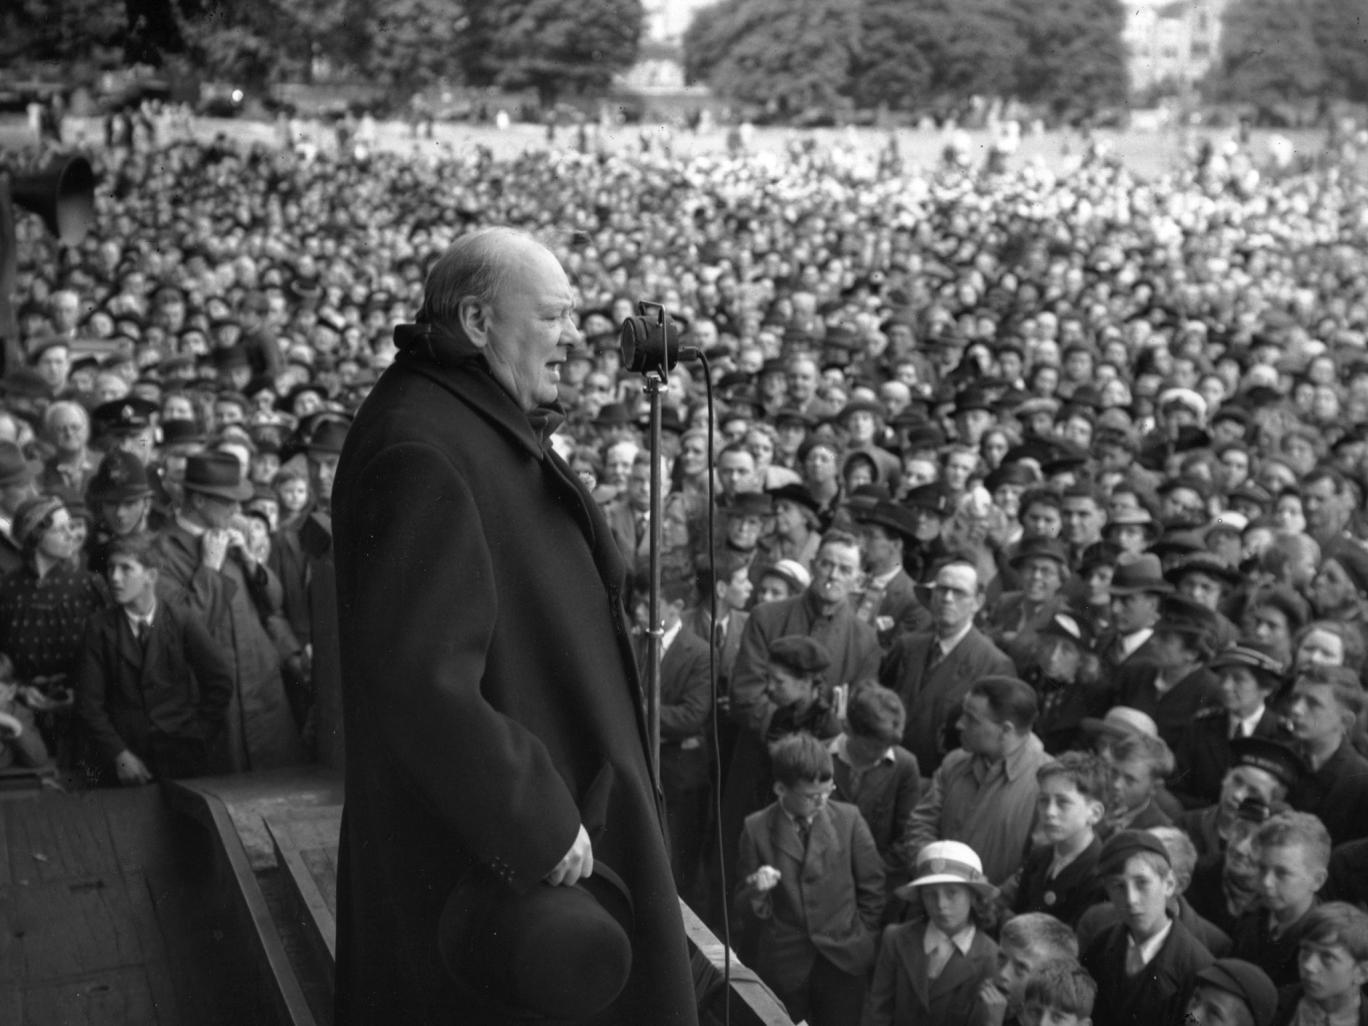 The prime minister of the wartime Coalition government Sir Winston Leonard Spencer Churchill during a speech 0n 2 July 1945. The July 1945 general election resulted in a resounding victory for the Labour Party